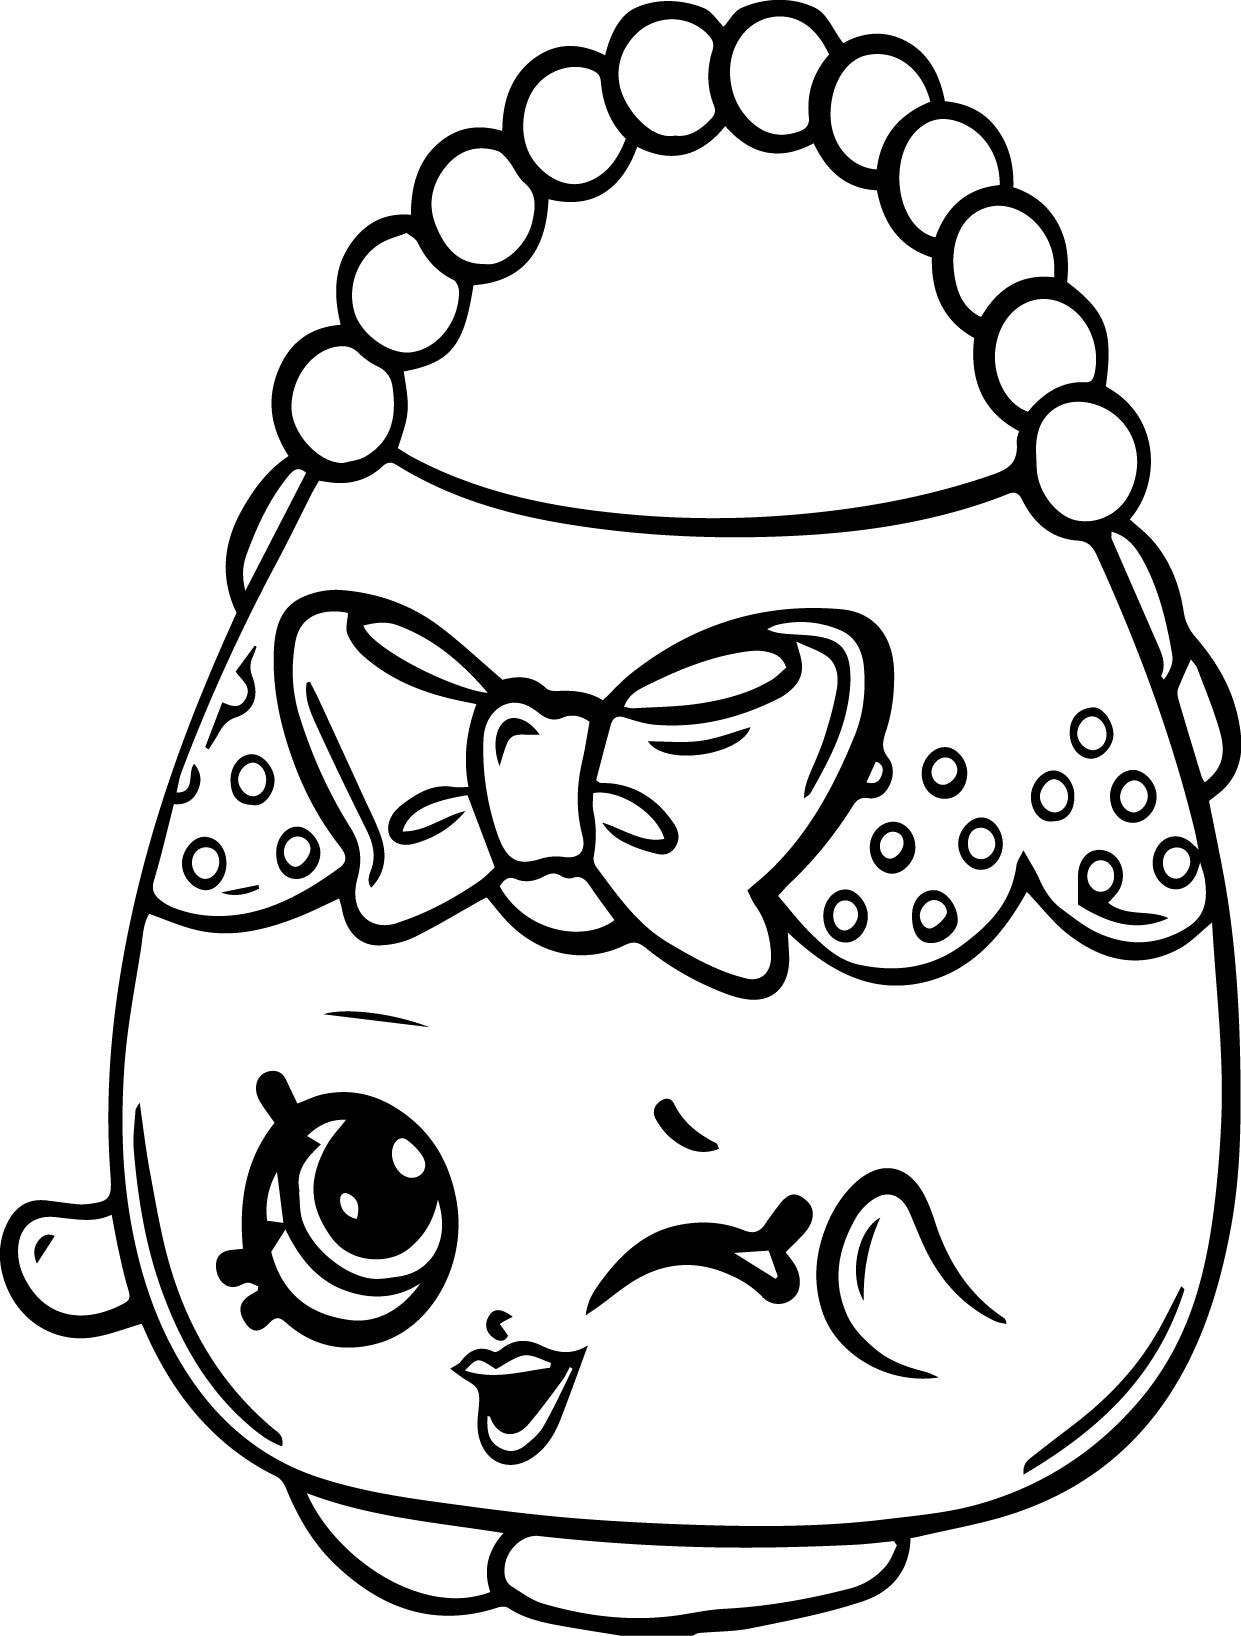 1241x1636 Shopkins Character Coloring Pages Free